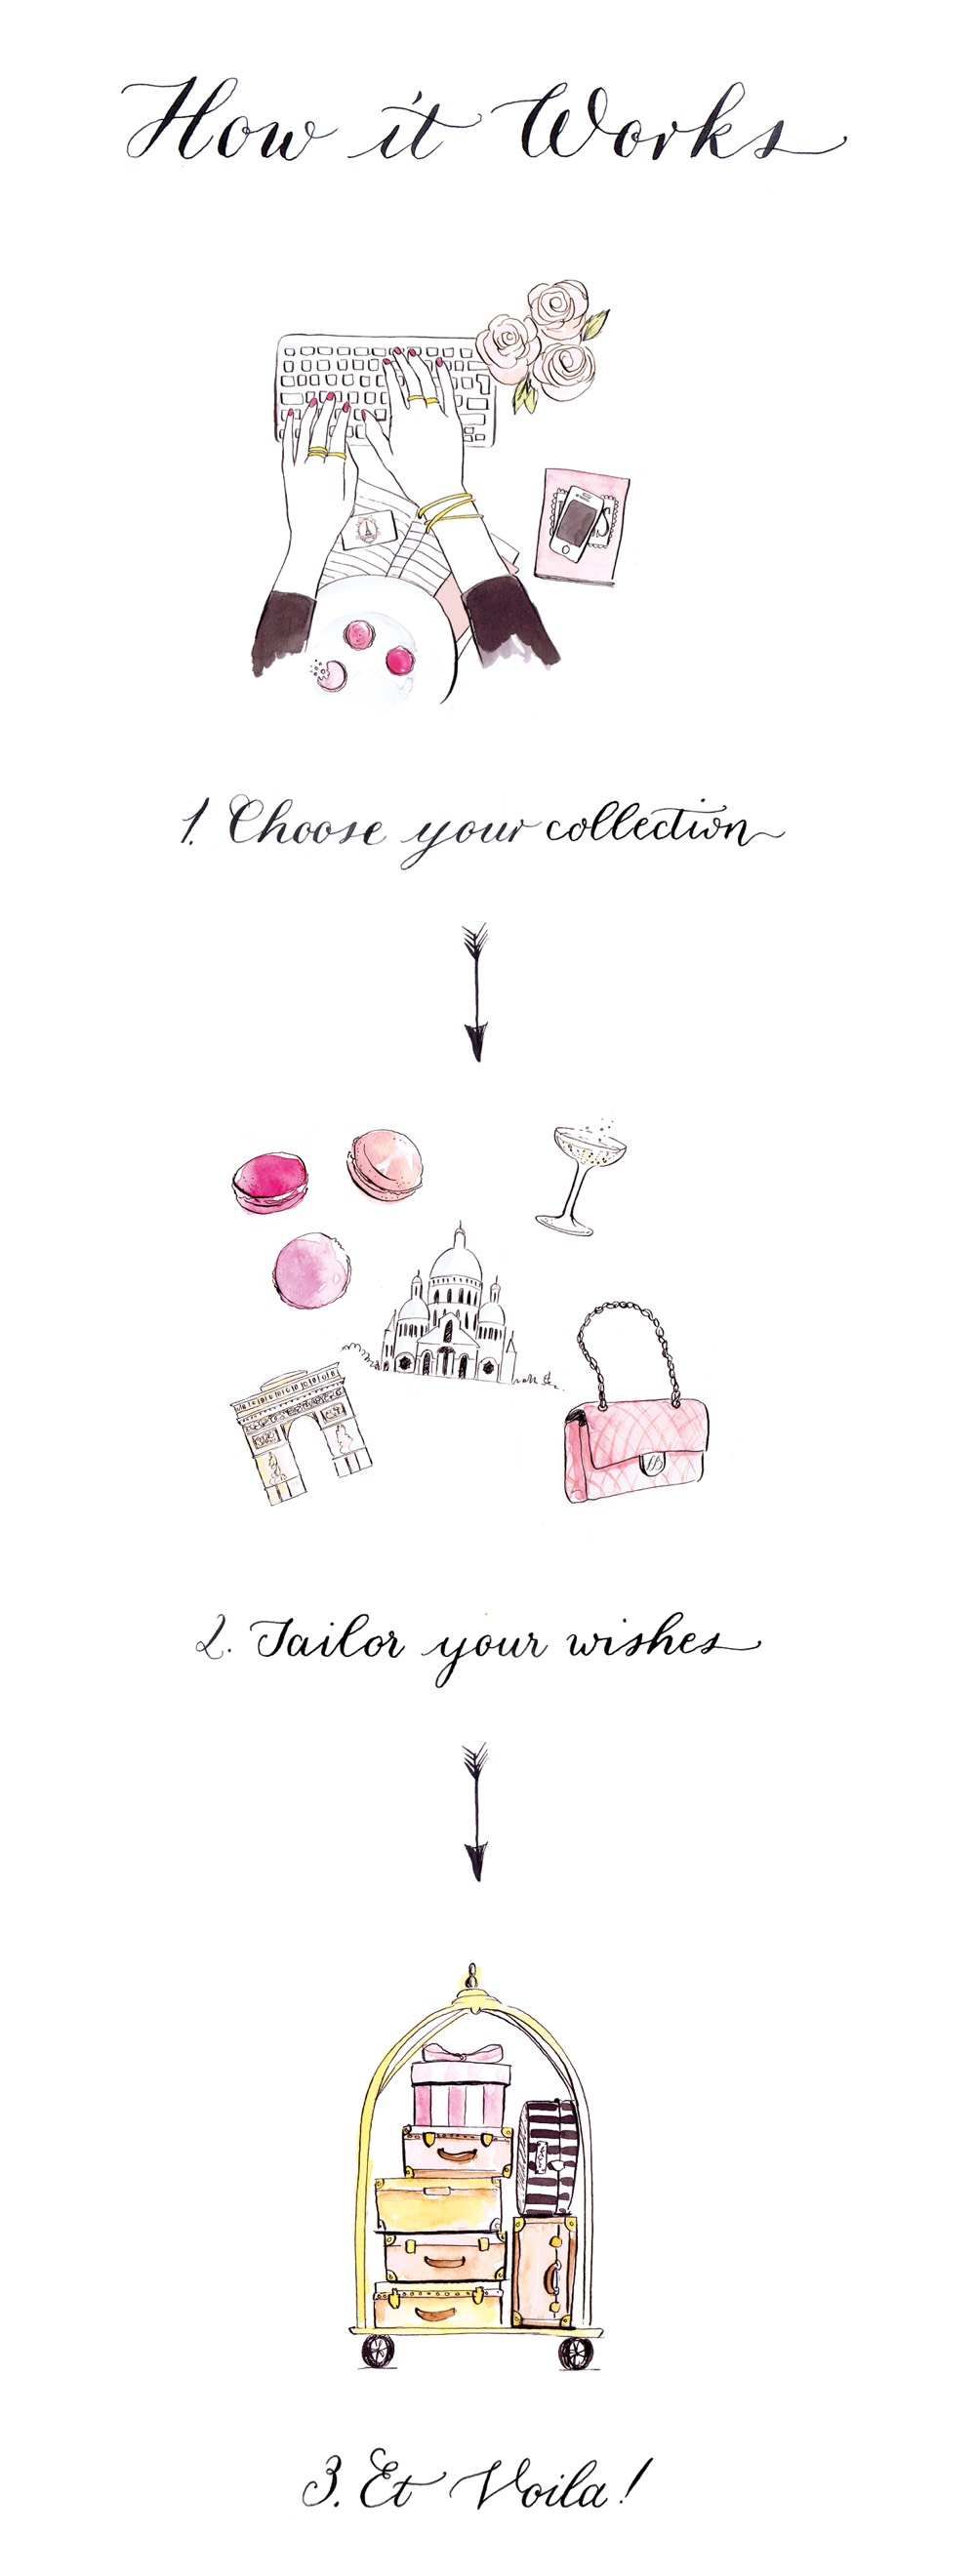 How it works. 1. Choose your collection; 2. Tailor your wishes; 3. Et Voila!